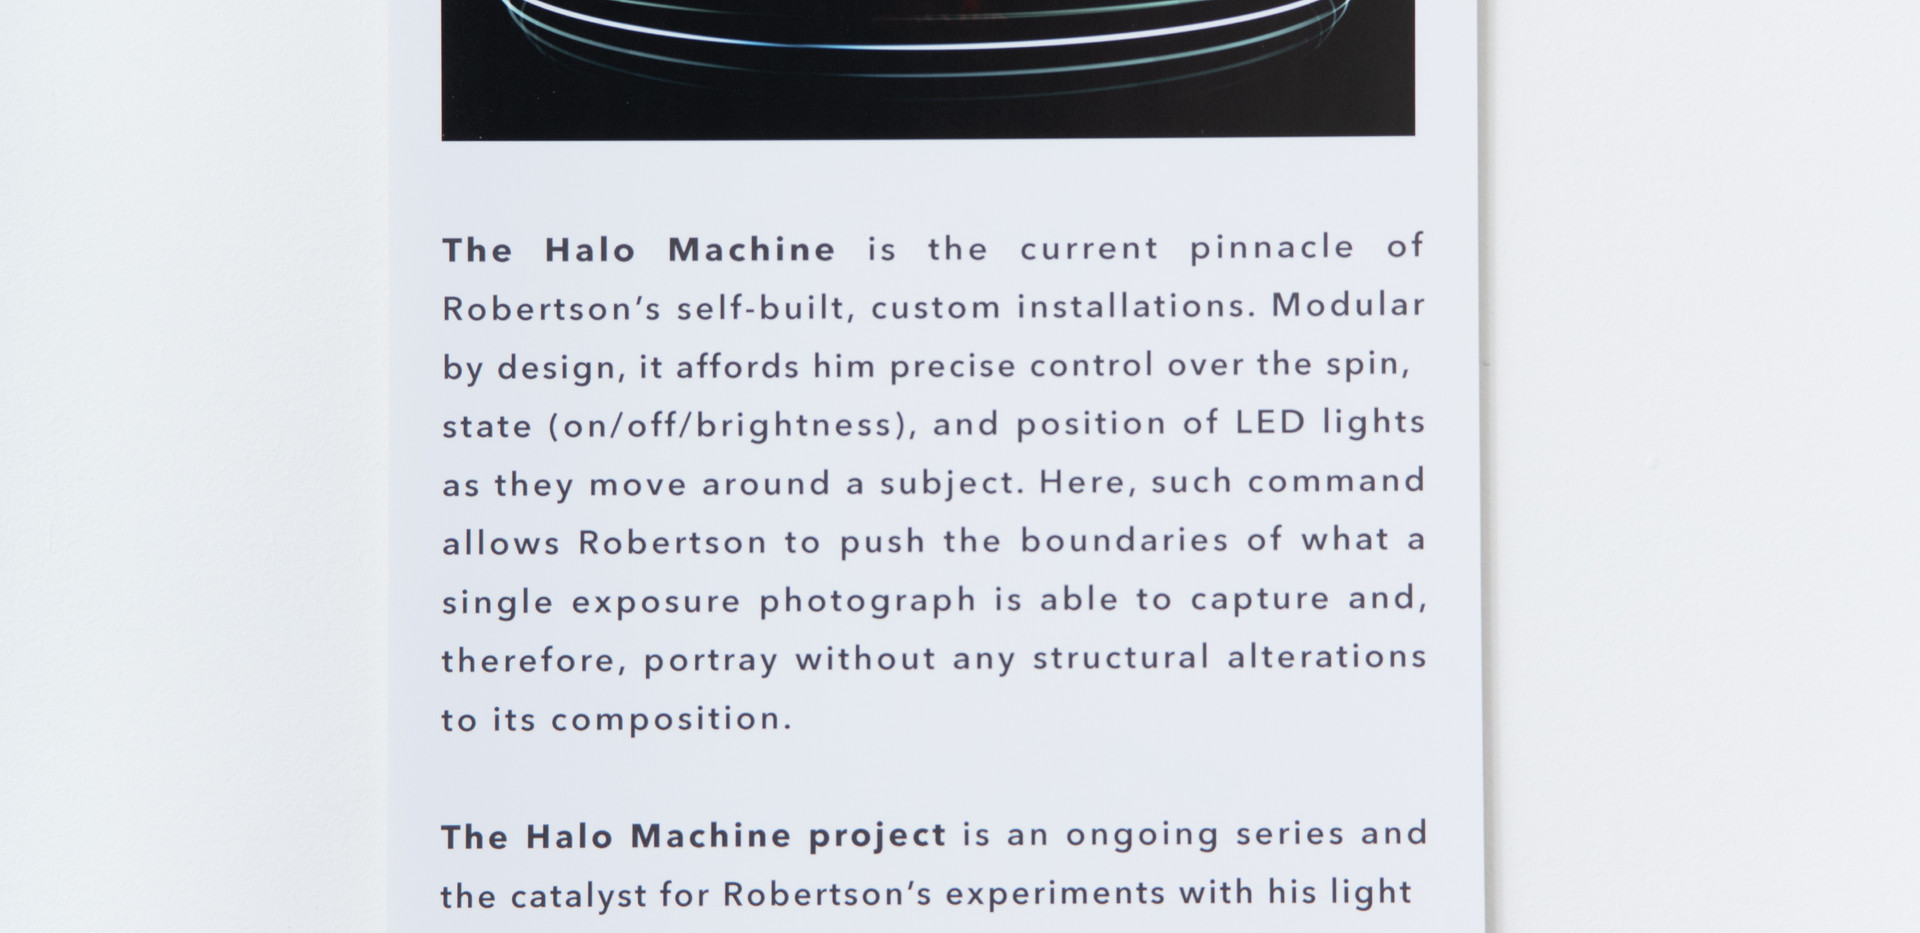 The Halo Machine